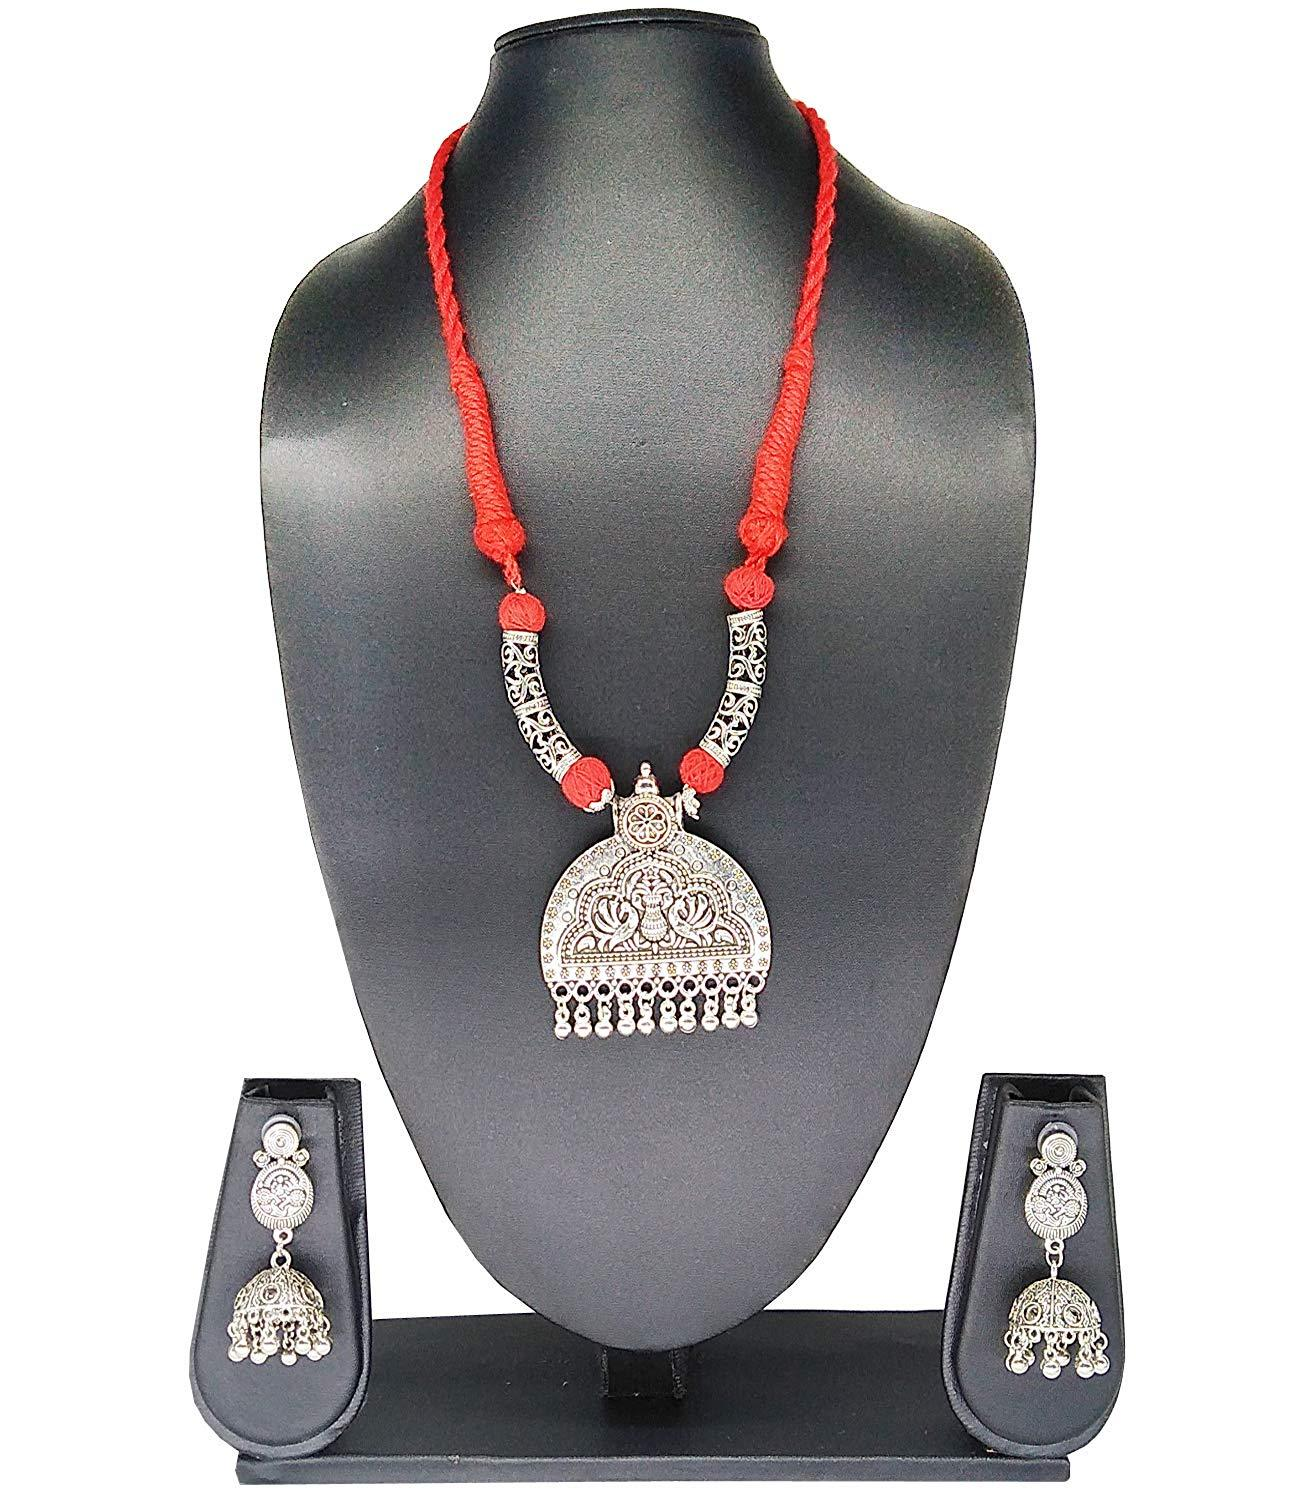 Silver Plating Handcrafted Necklace and Earring Set - Bagaholics Gift